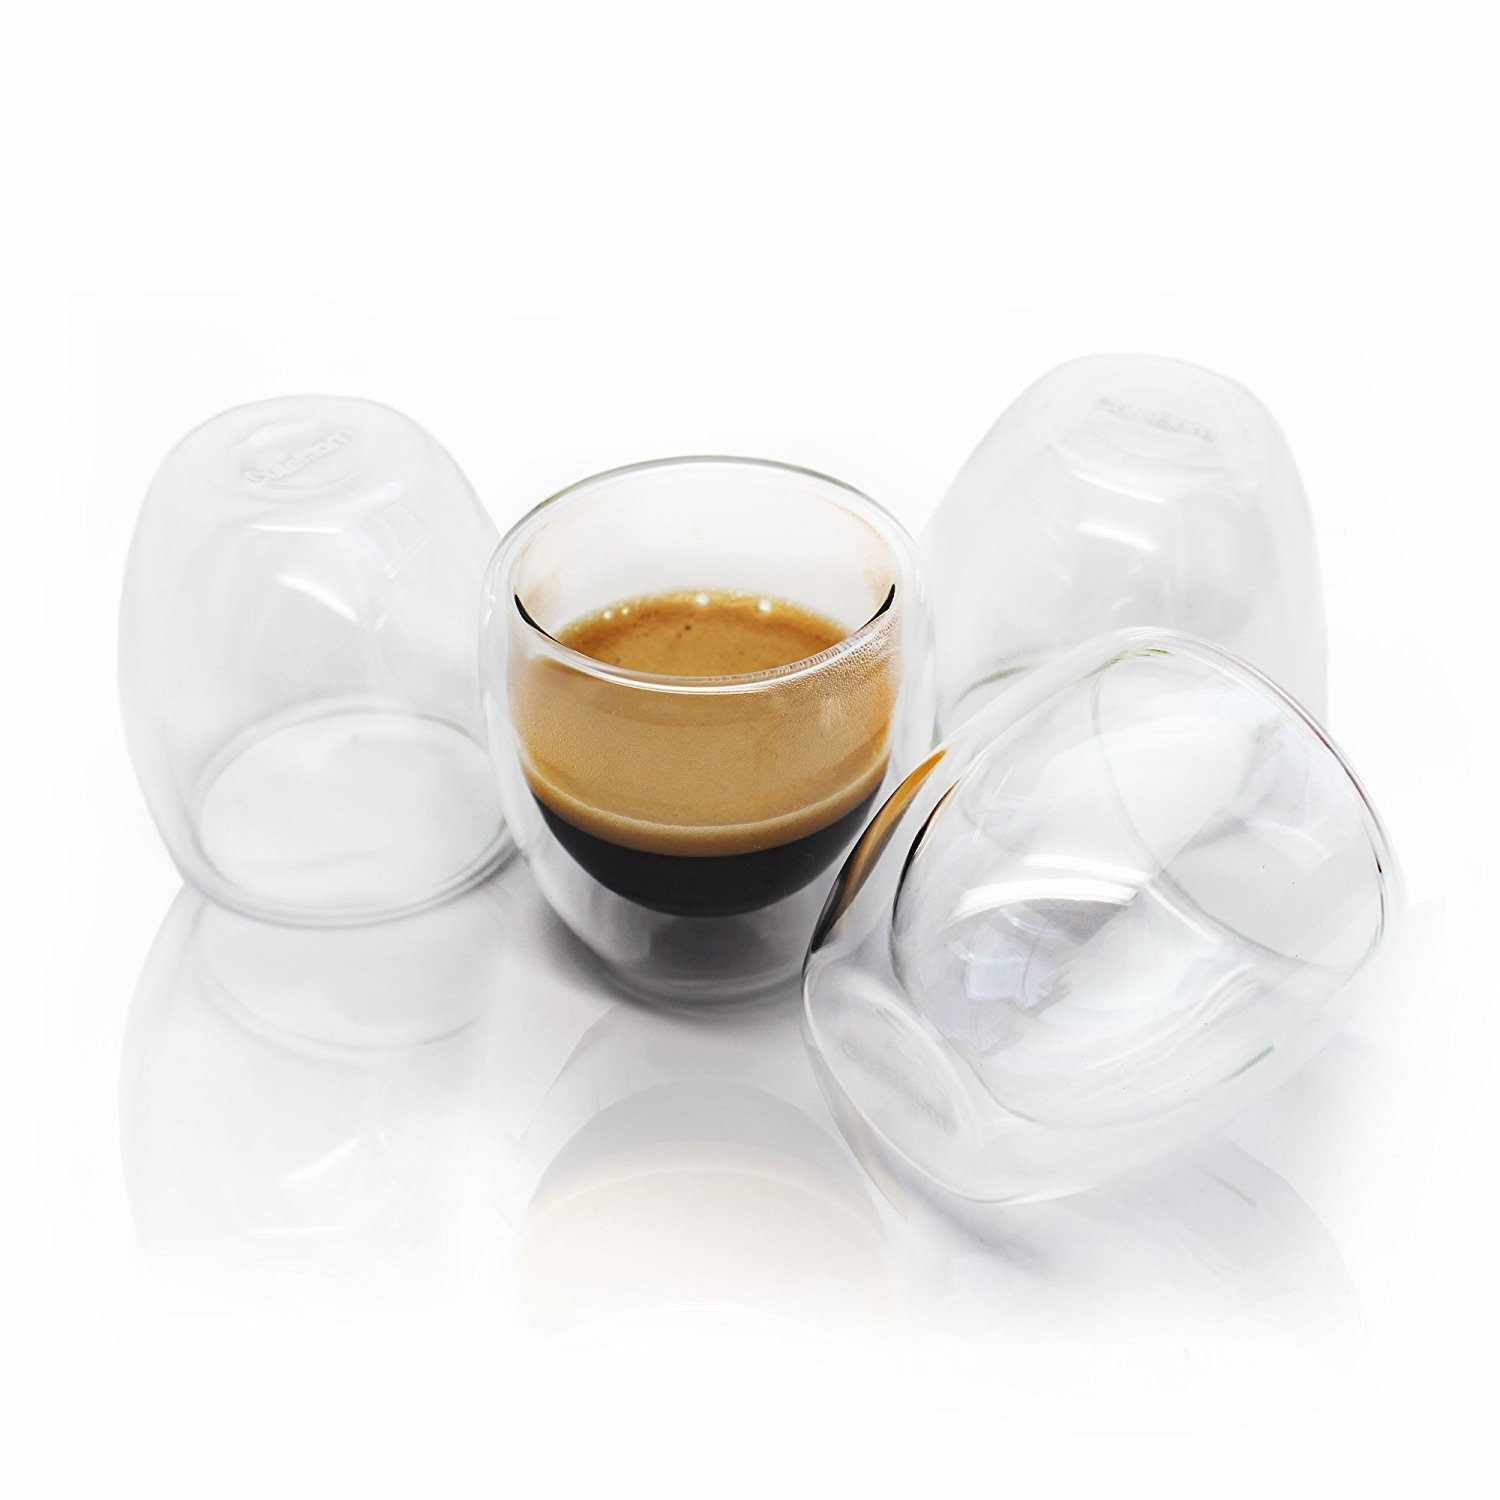 Cutehom Espresso Coffee Cups - Set of 4 Double Wall Shot Glasses CH-ESPCUP-4SET